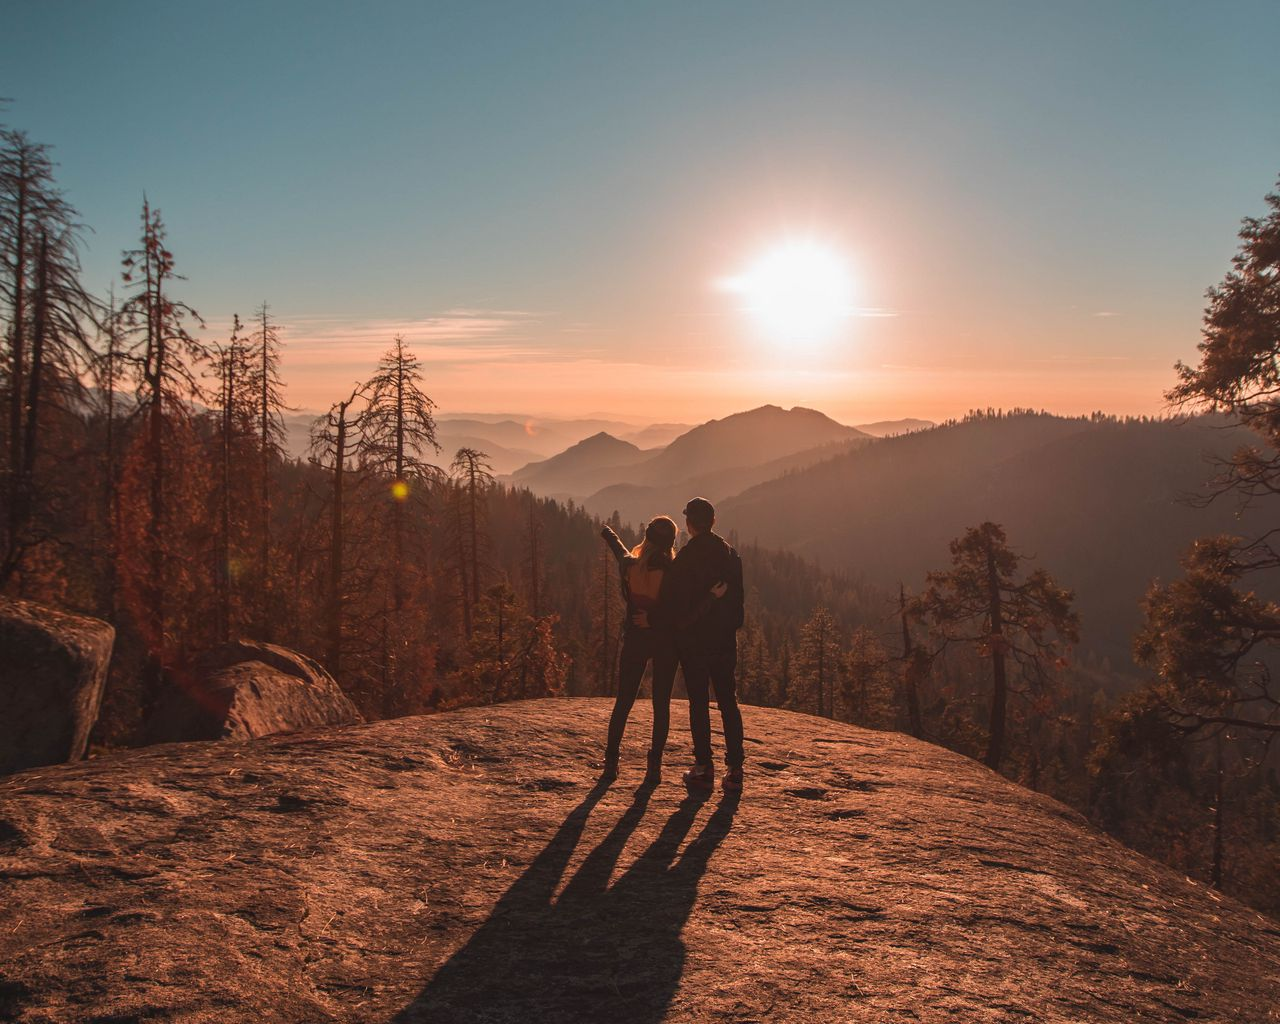 1280x1024 Wallpaper couple, mountains, travel, sunset, sequoia national park, united states